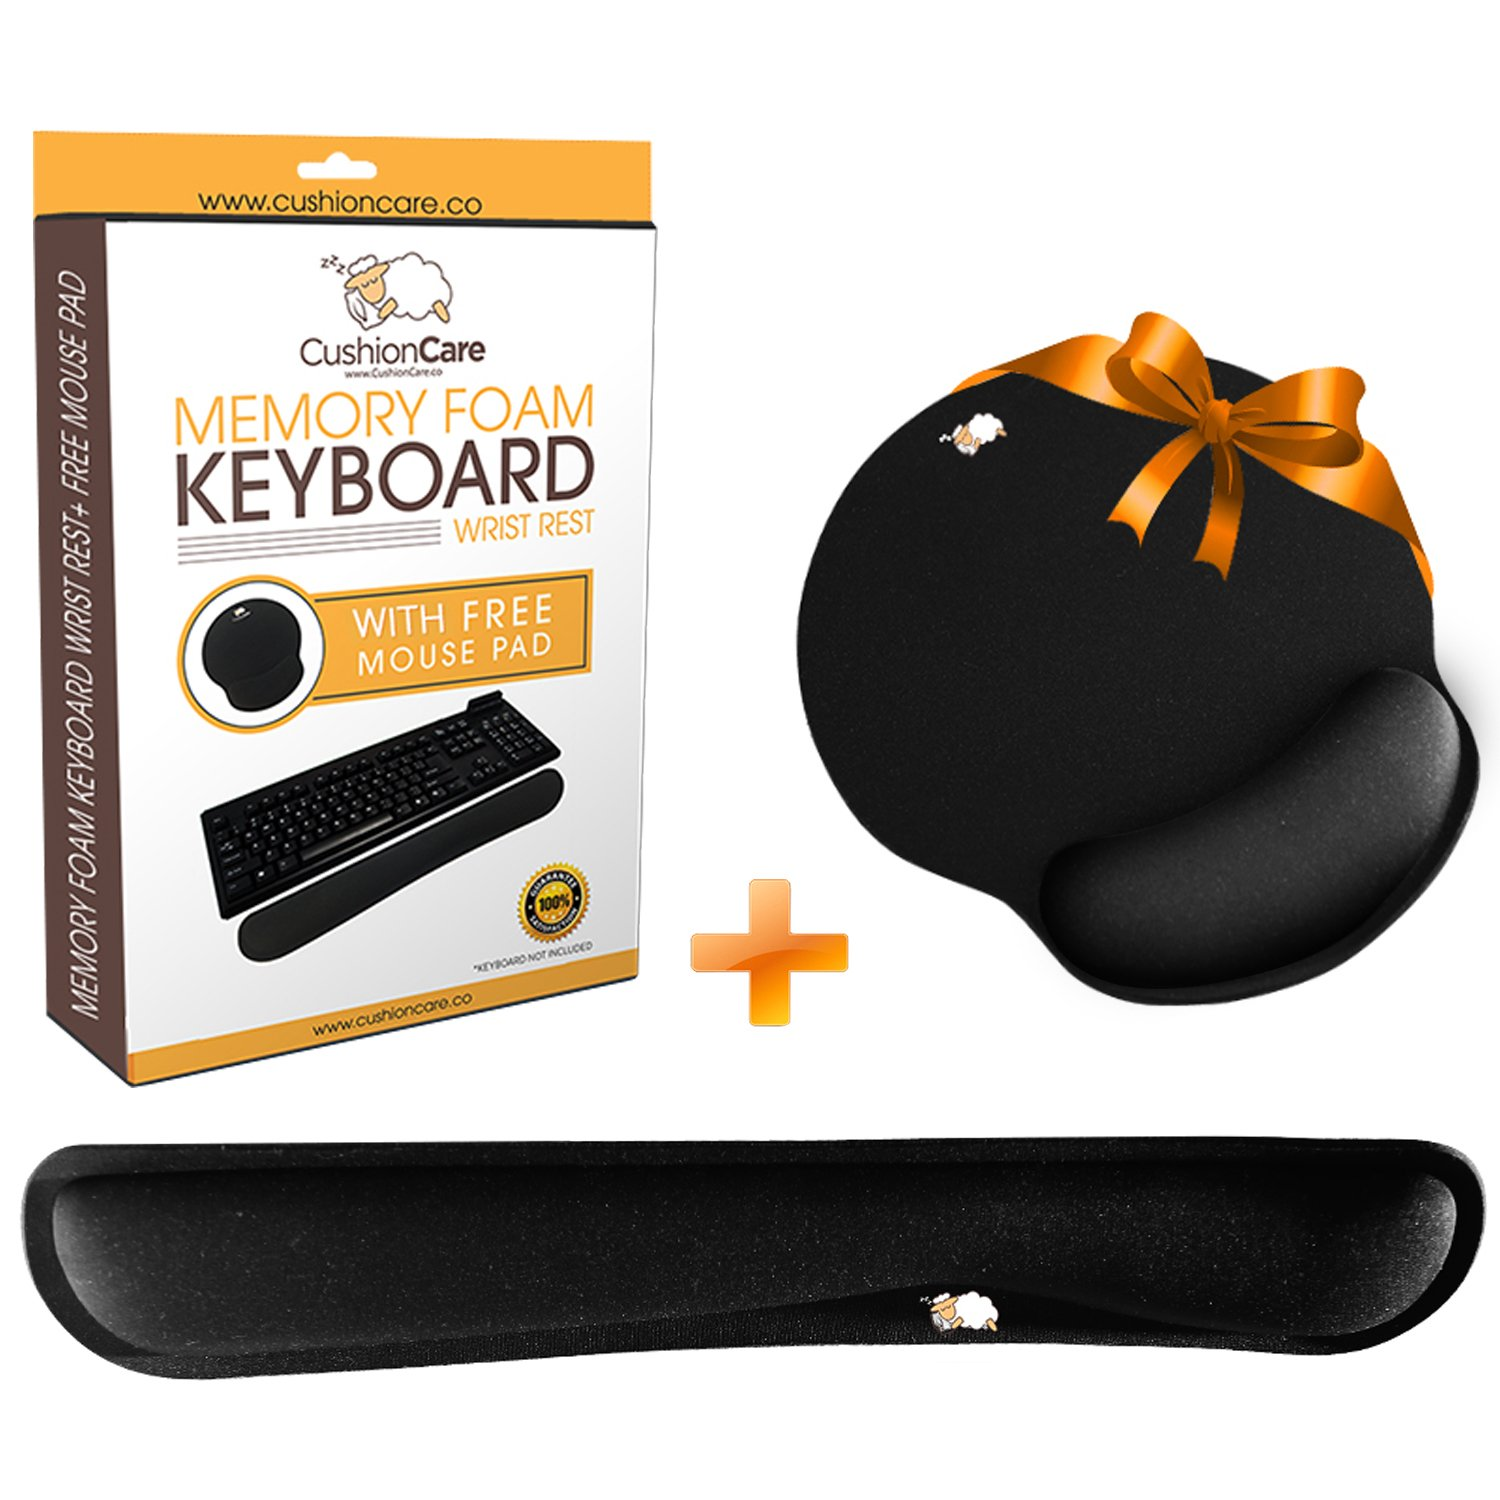 CushionCare Keyboard Wrist Rest Pad - Full Ergonomic Mouse Pad with Wrist Support Gel Included for Set - Memory Foam Cushion - Prevent Carpal Tunnel & RSI When Typing on Computer, Mac & Laptop by CushionCare